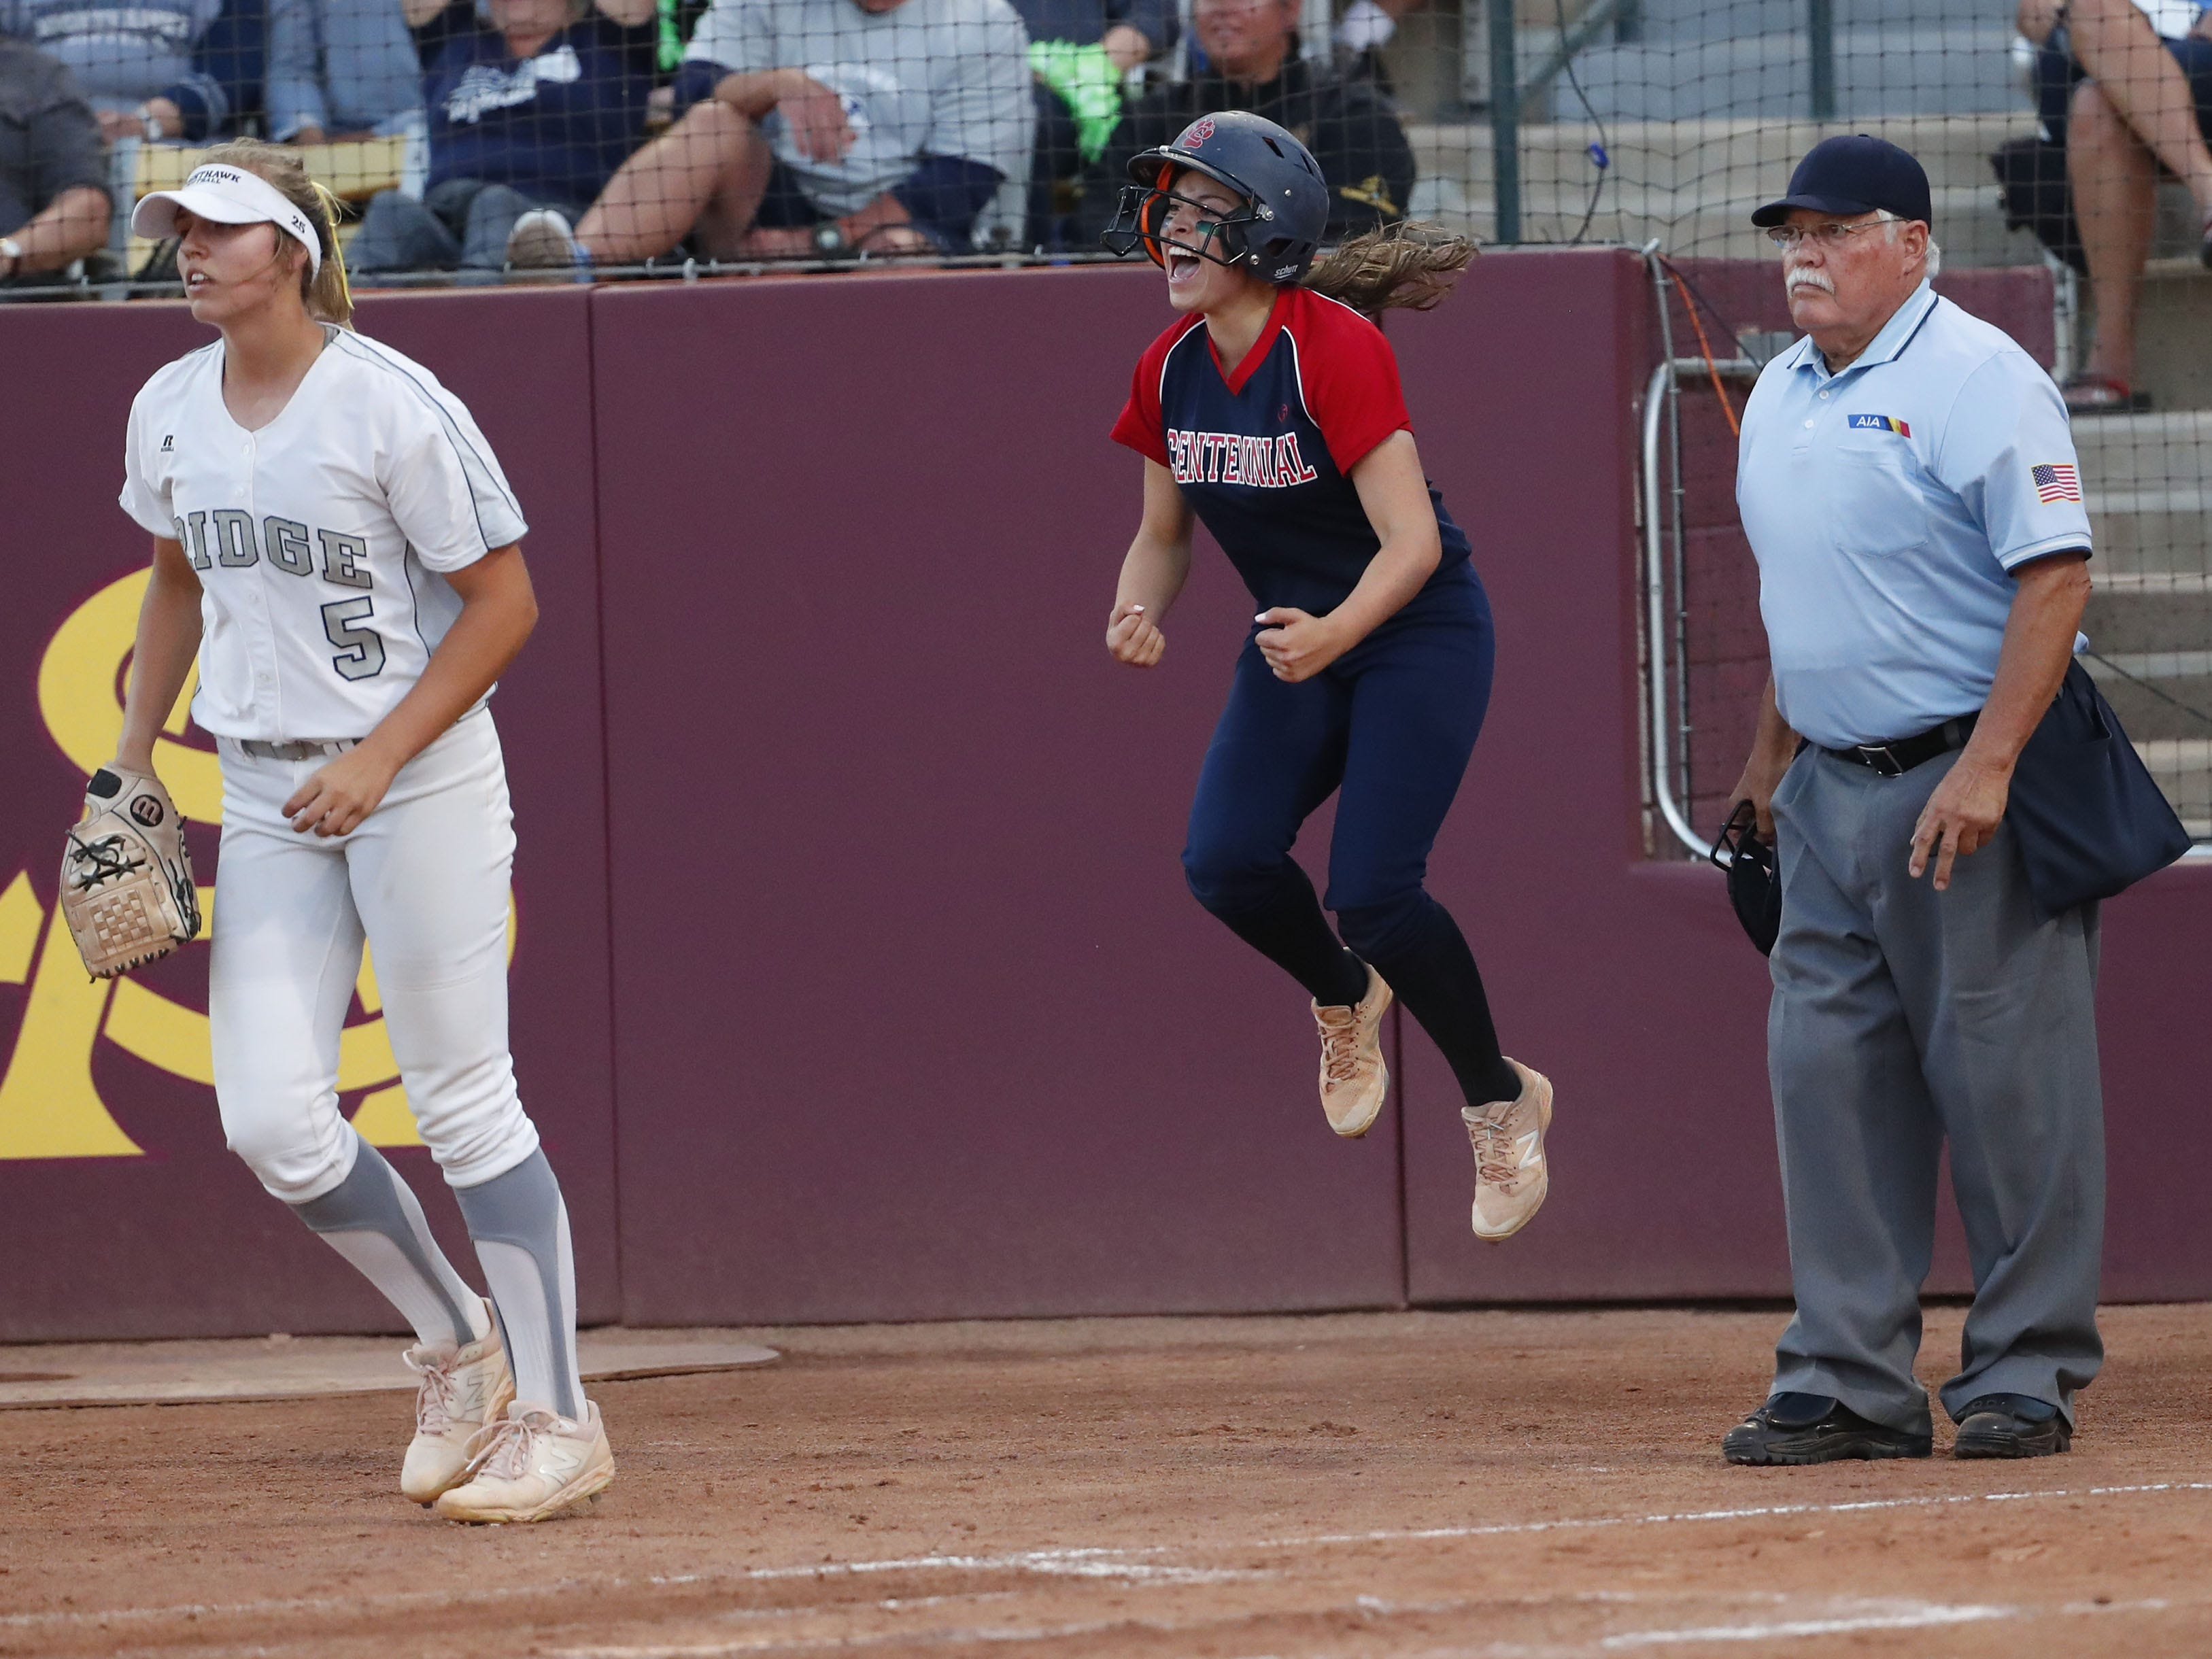 Centennial center fielder Jaydin Gonzalez celebrates after scoring against Ironwood Ridge during the 5A State Softball Championship in Tempe, Ariz. May 13, 2019.